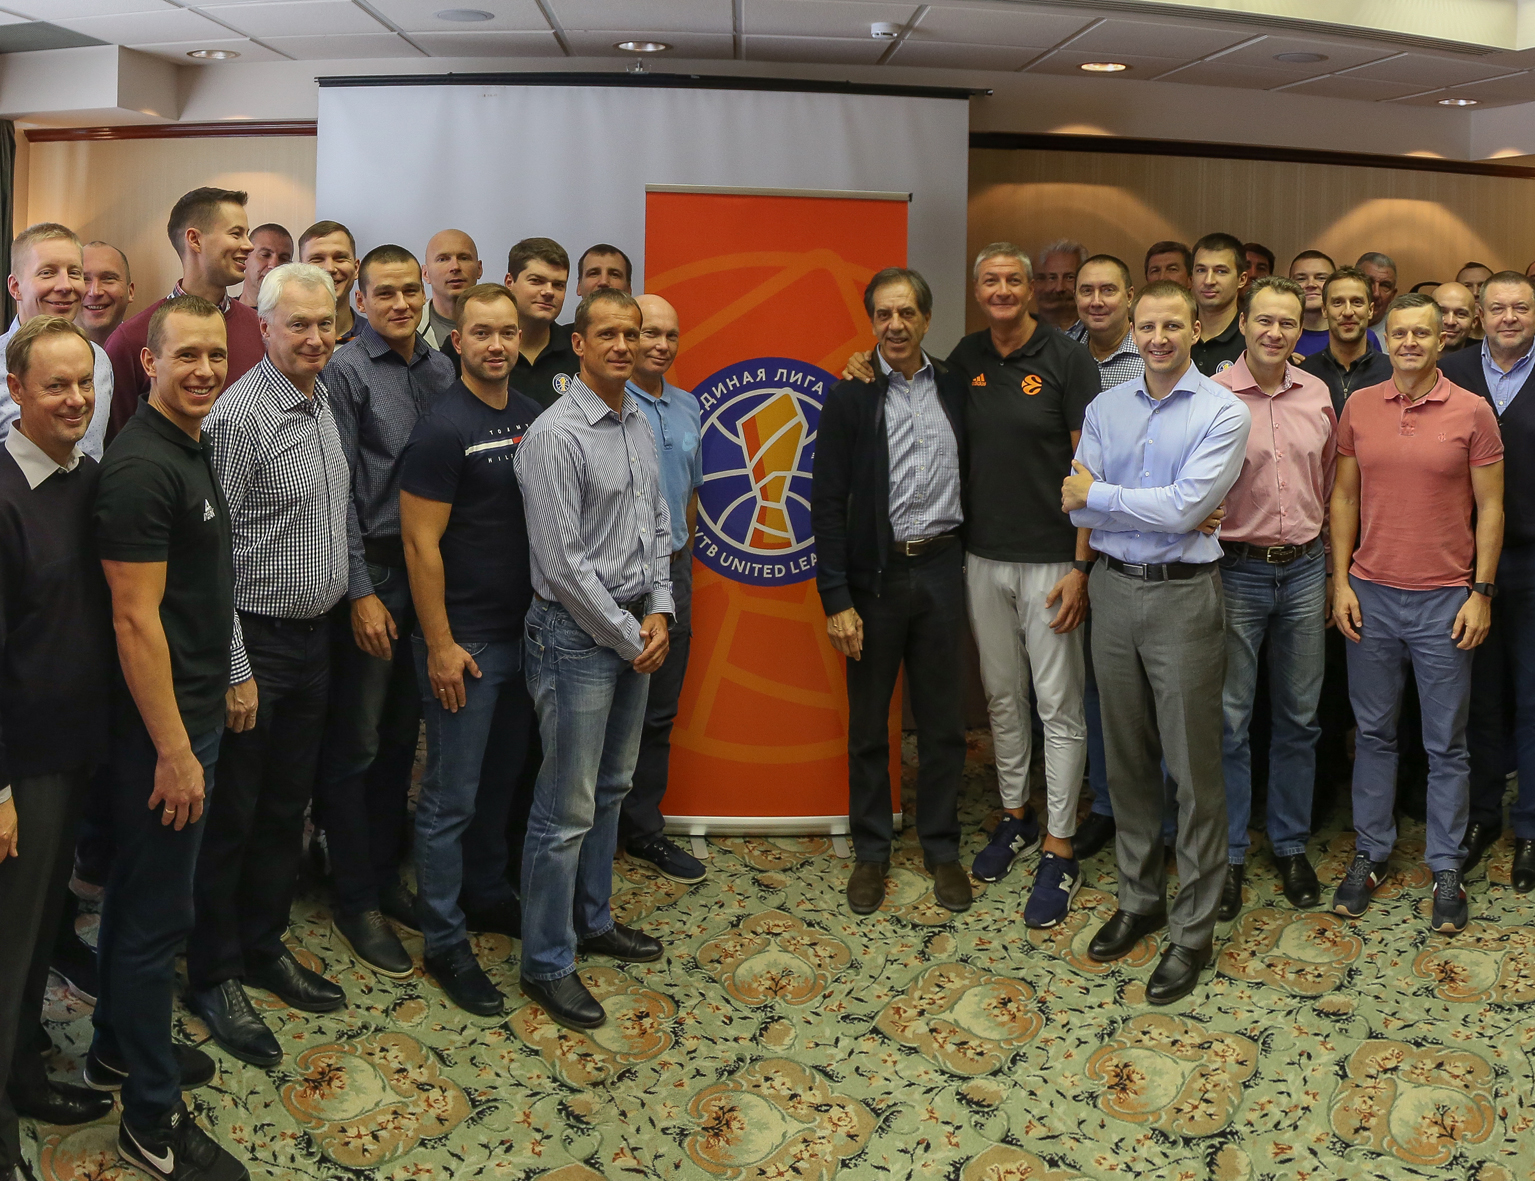 VTB United League Hosts Refereeing Seminar